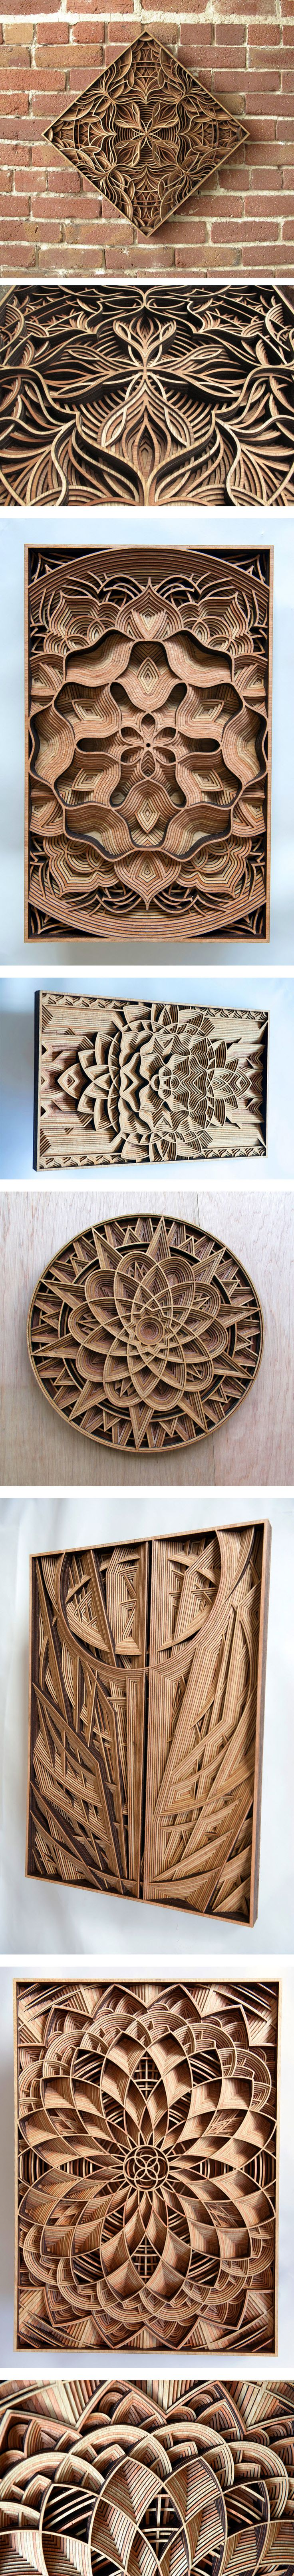 Geometric Laser-Cut Wood Relief Sculptures by Gabriel Schama